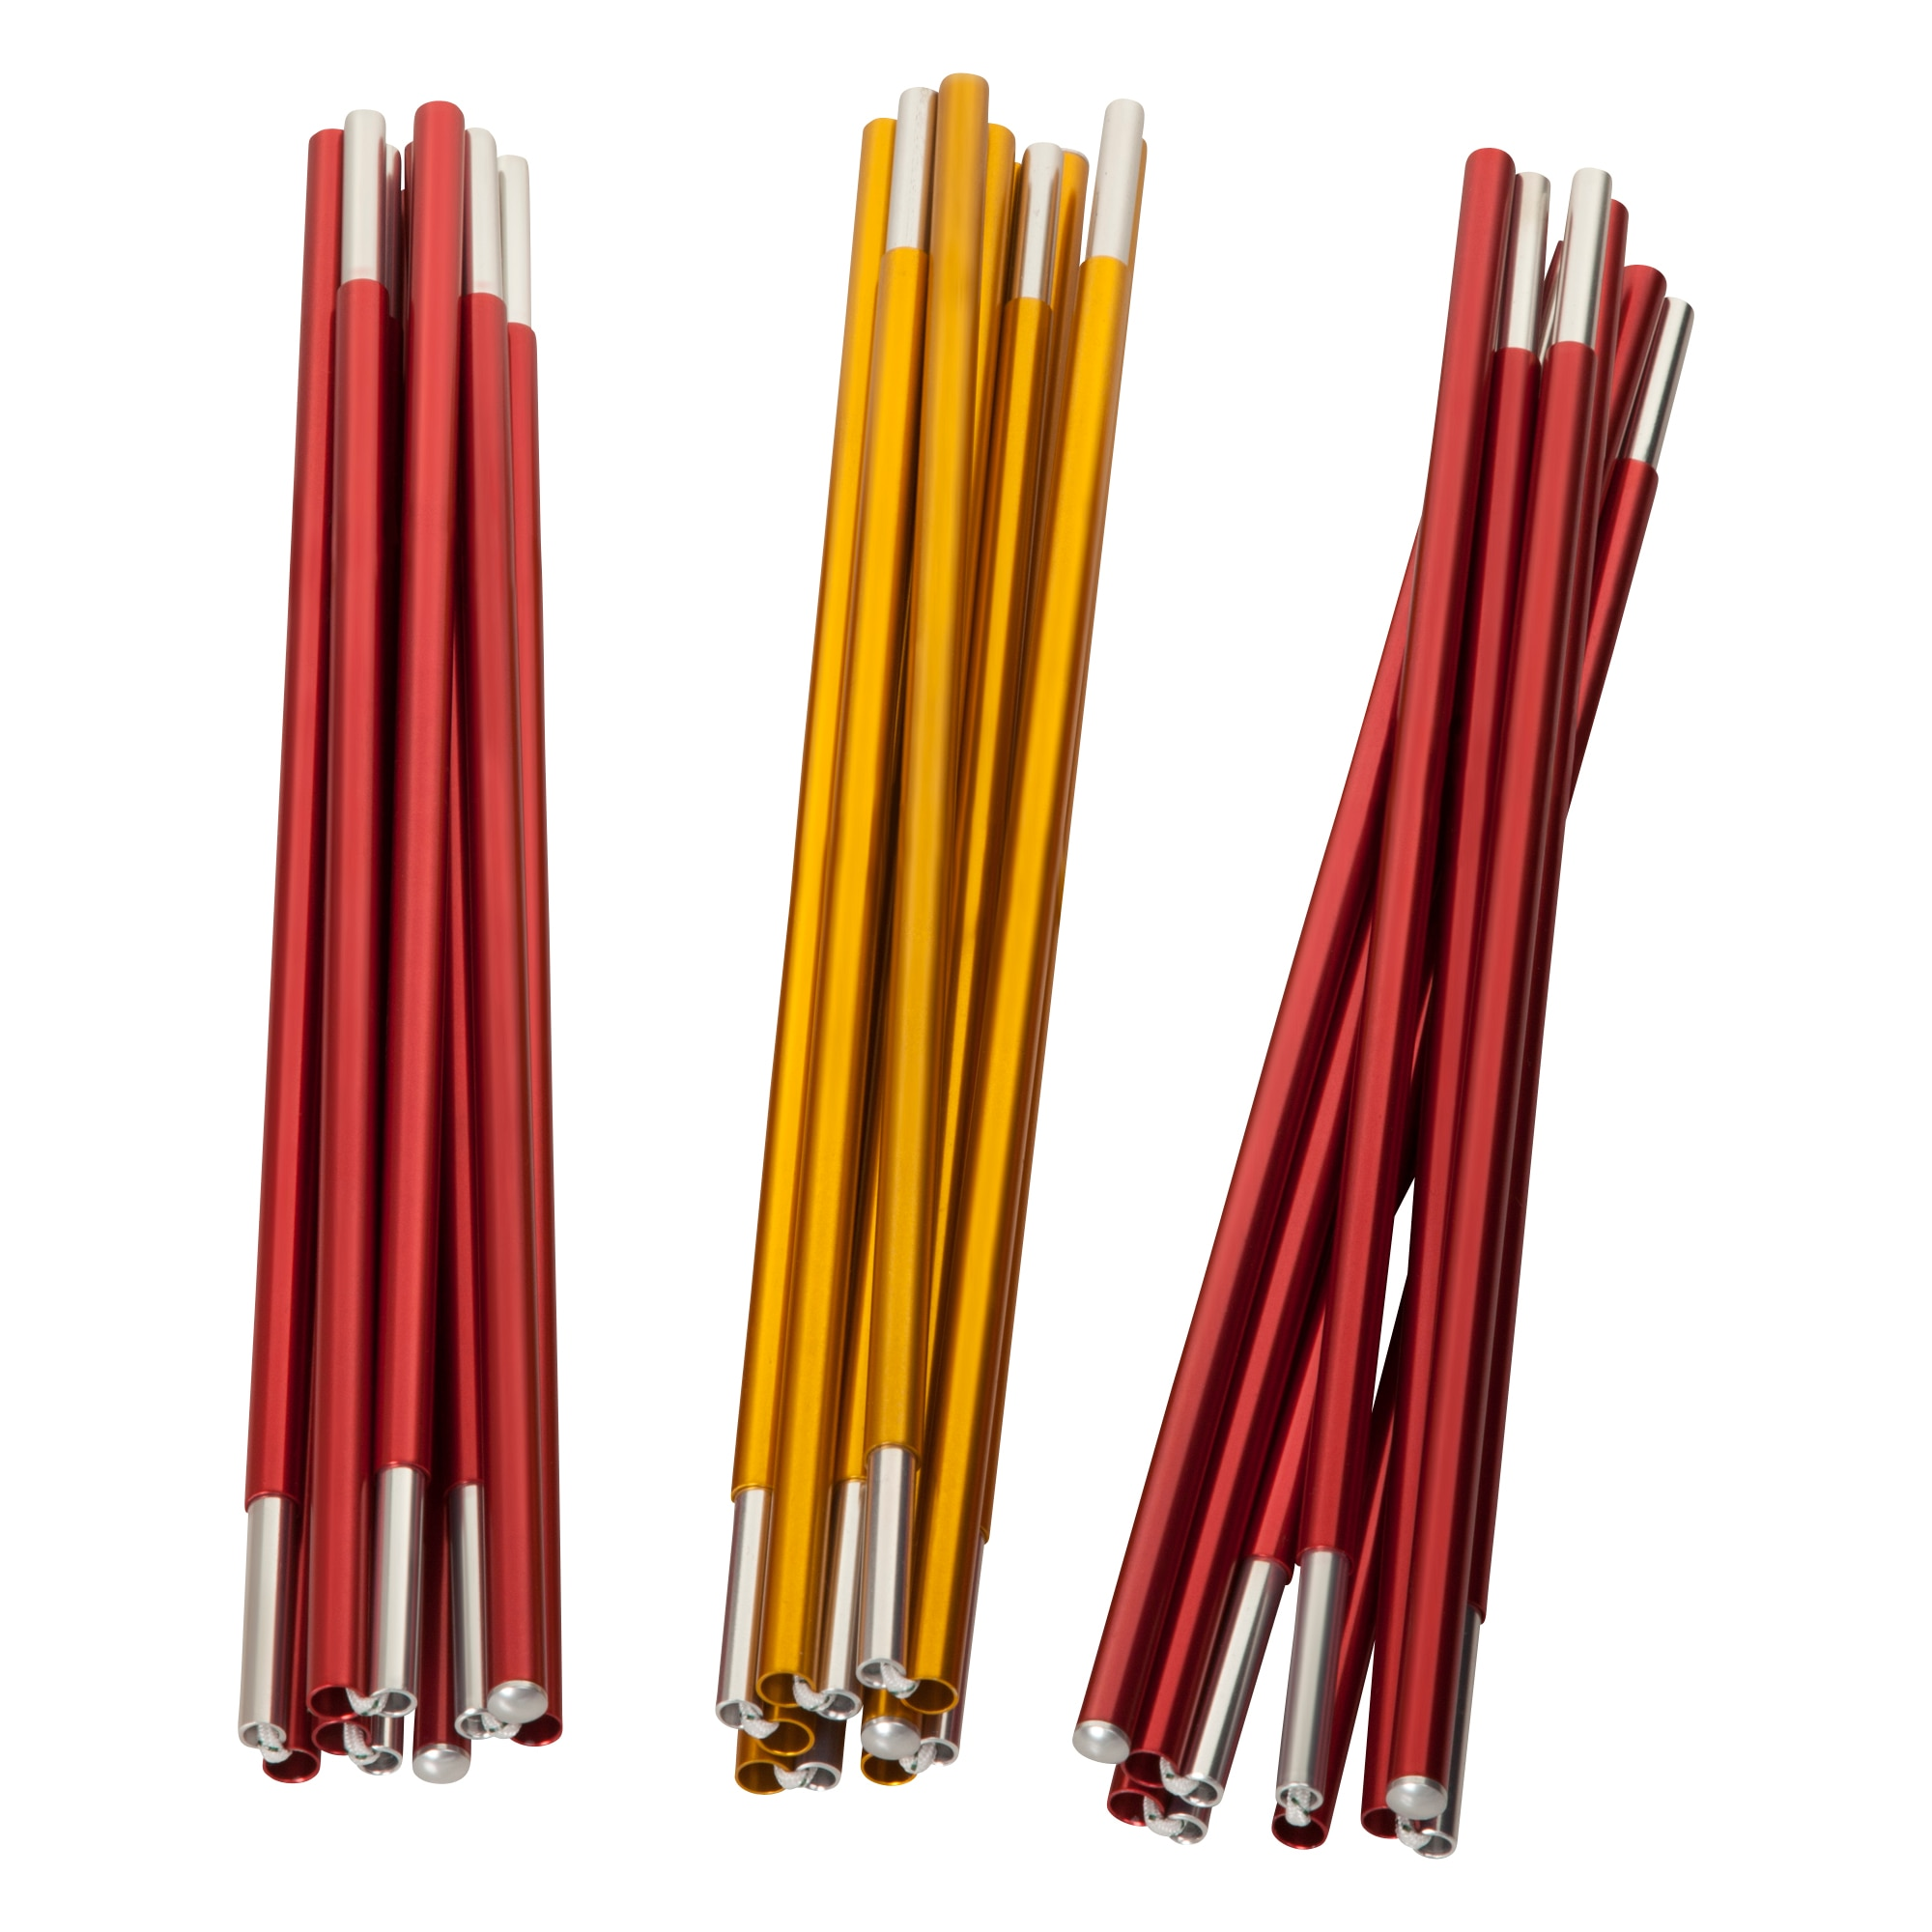 Tent Poles for 4-Pers Tent (3 Poles)